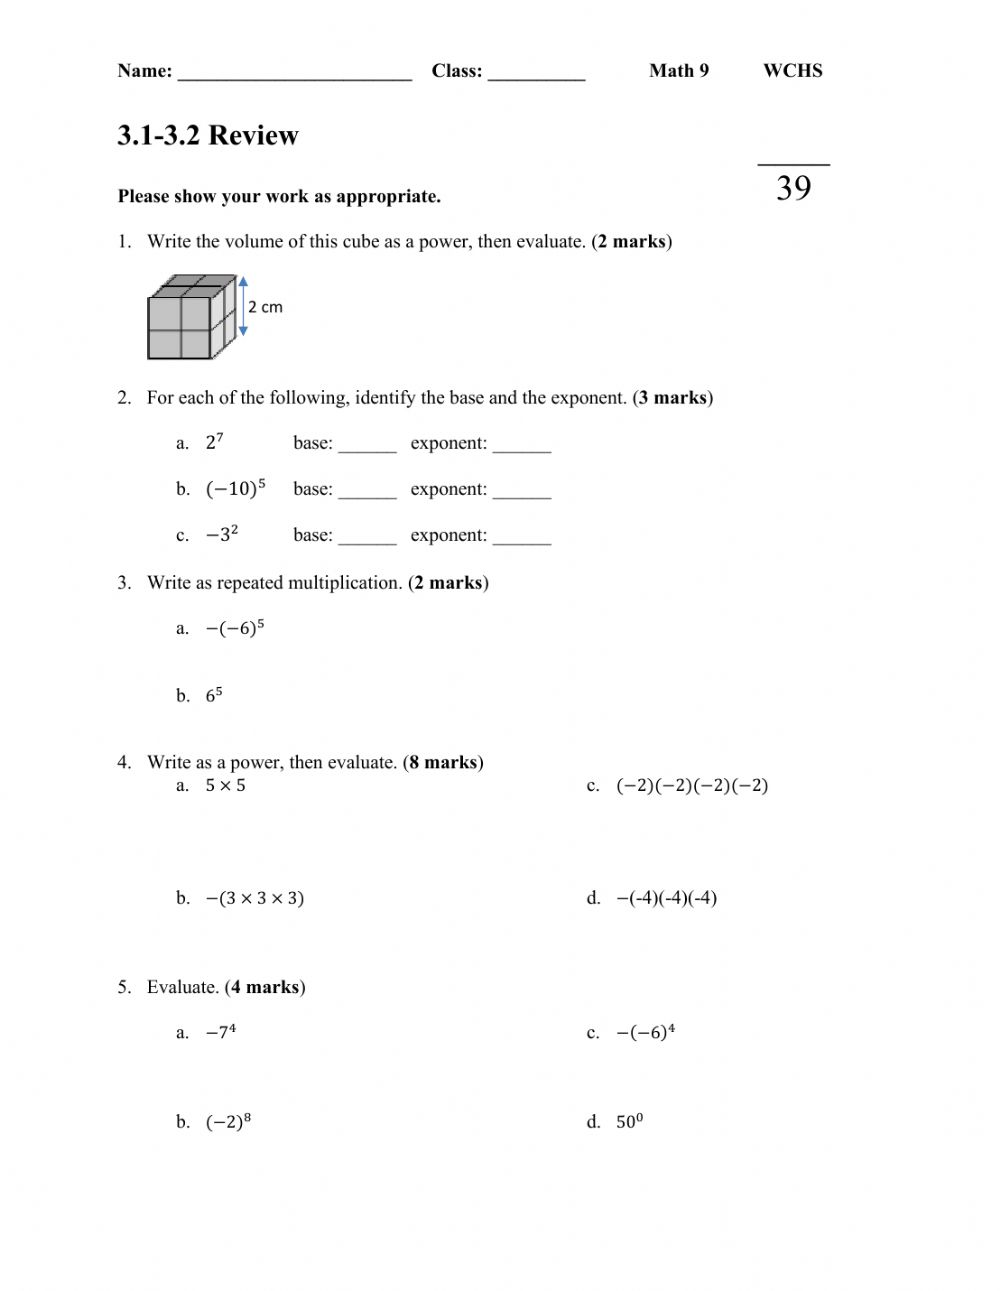 hight resolution of 3.1-3.2 Review Assignment worksheet